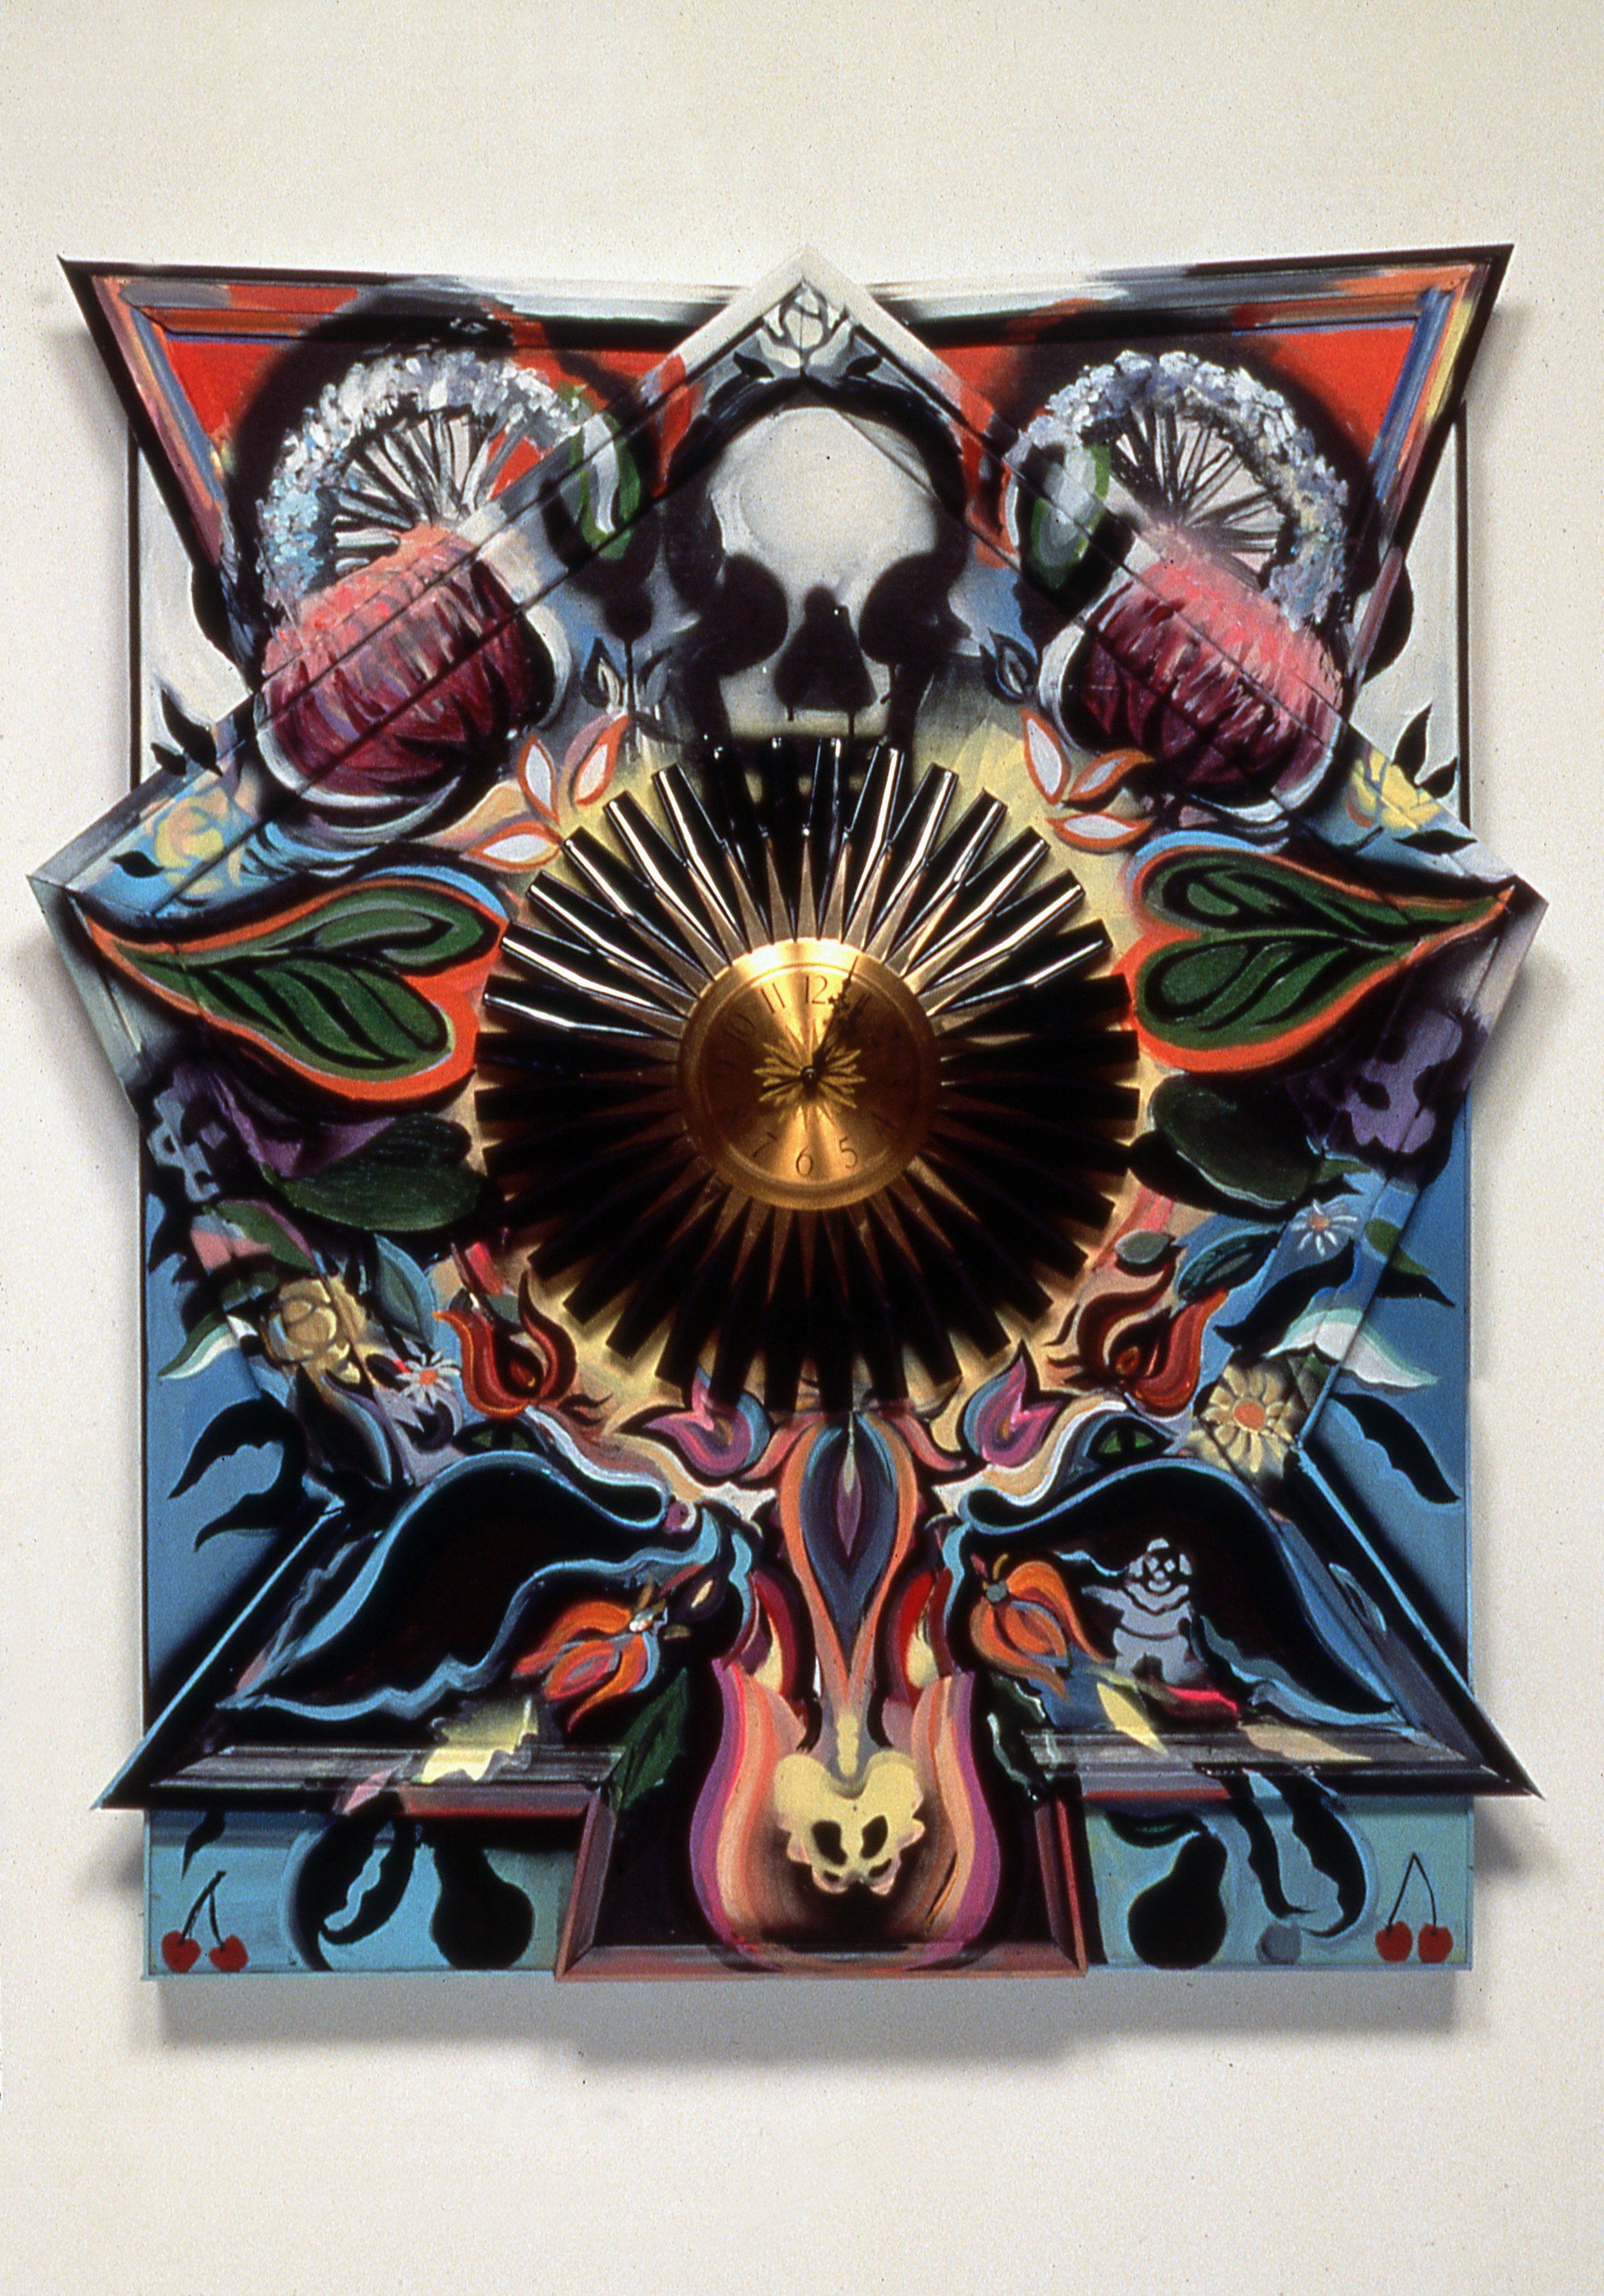 """The Deadly Arrangement I , 1990-91  Bas relief, acrylic, wood molding , plexiglass, and found clock on wood panel  42 1/2"""" x 36 1/2"""" x 7 3/8"""""""